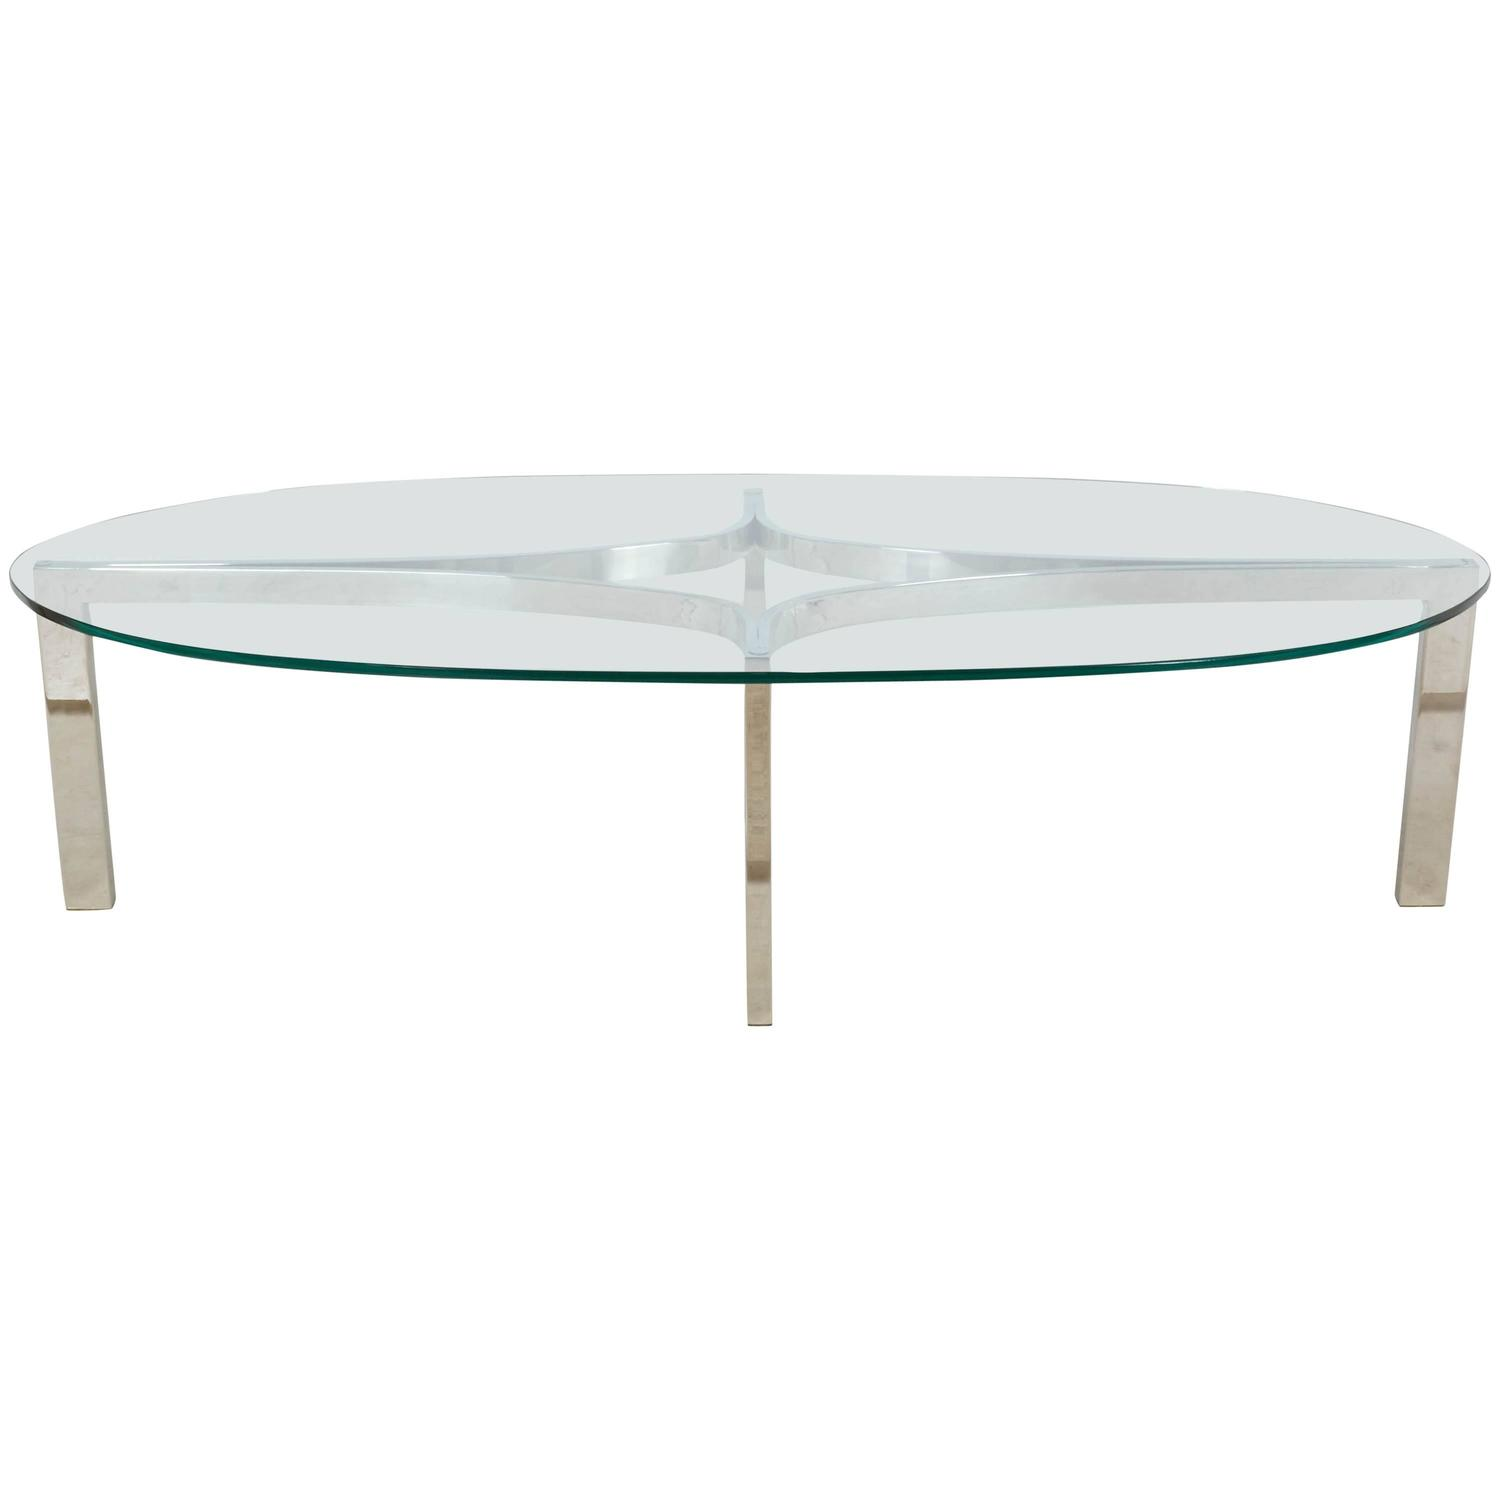 Chrome and glass sculptural oval coffee table at 1stdibs Glass oval coffee tables